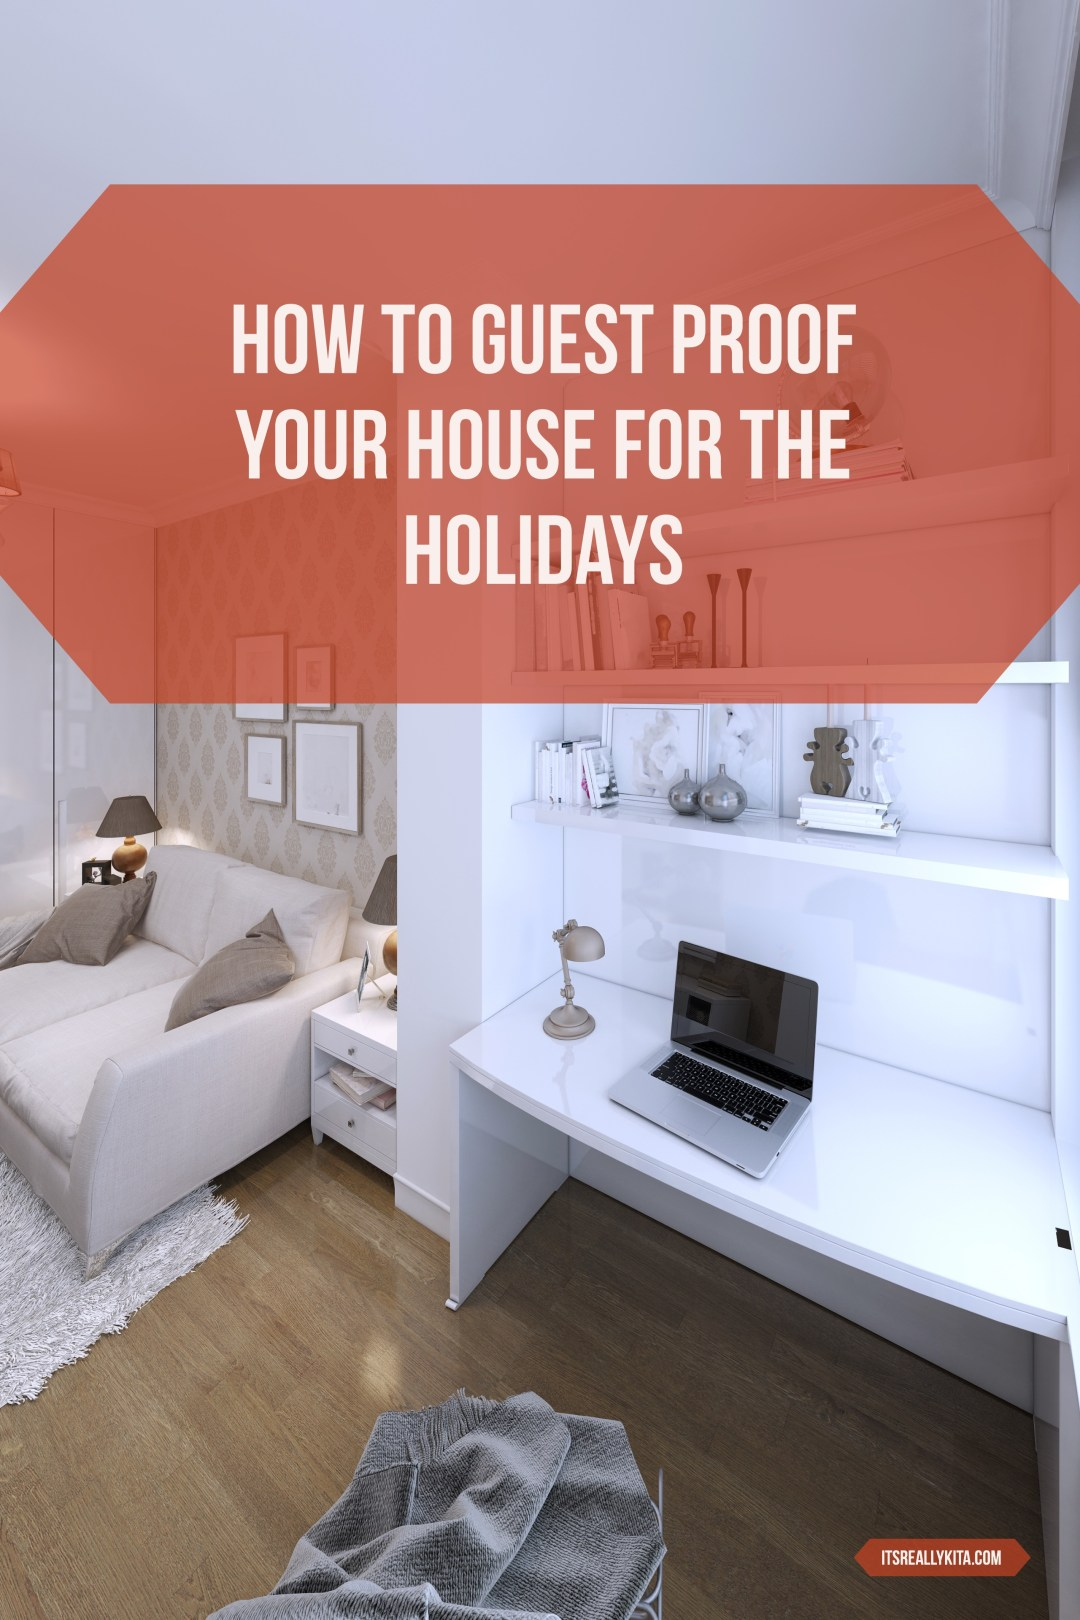 How to guest proof your house for the holidays